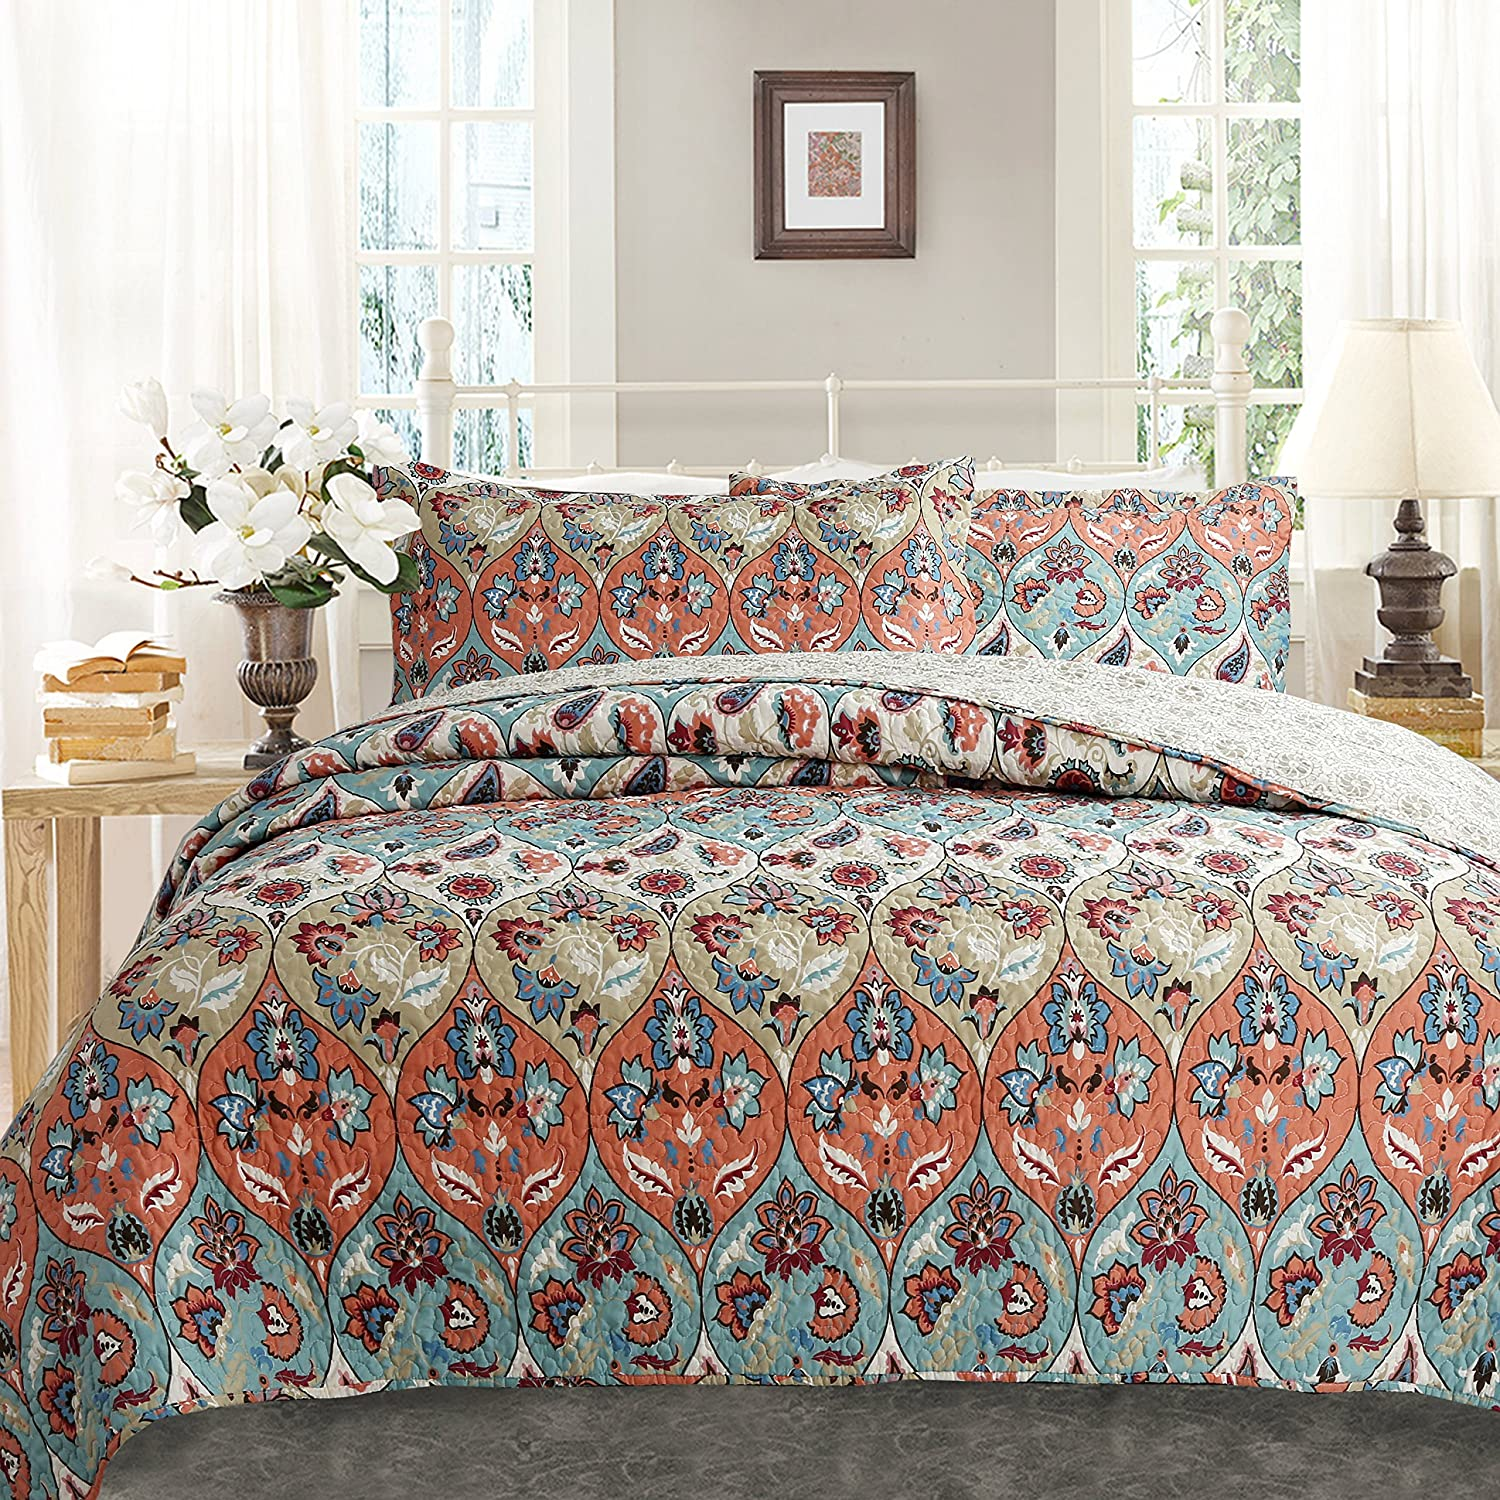 bed reviews wayfair simpson quilt jessica pdx bohemian set home aiah bath